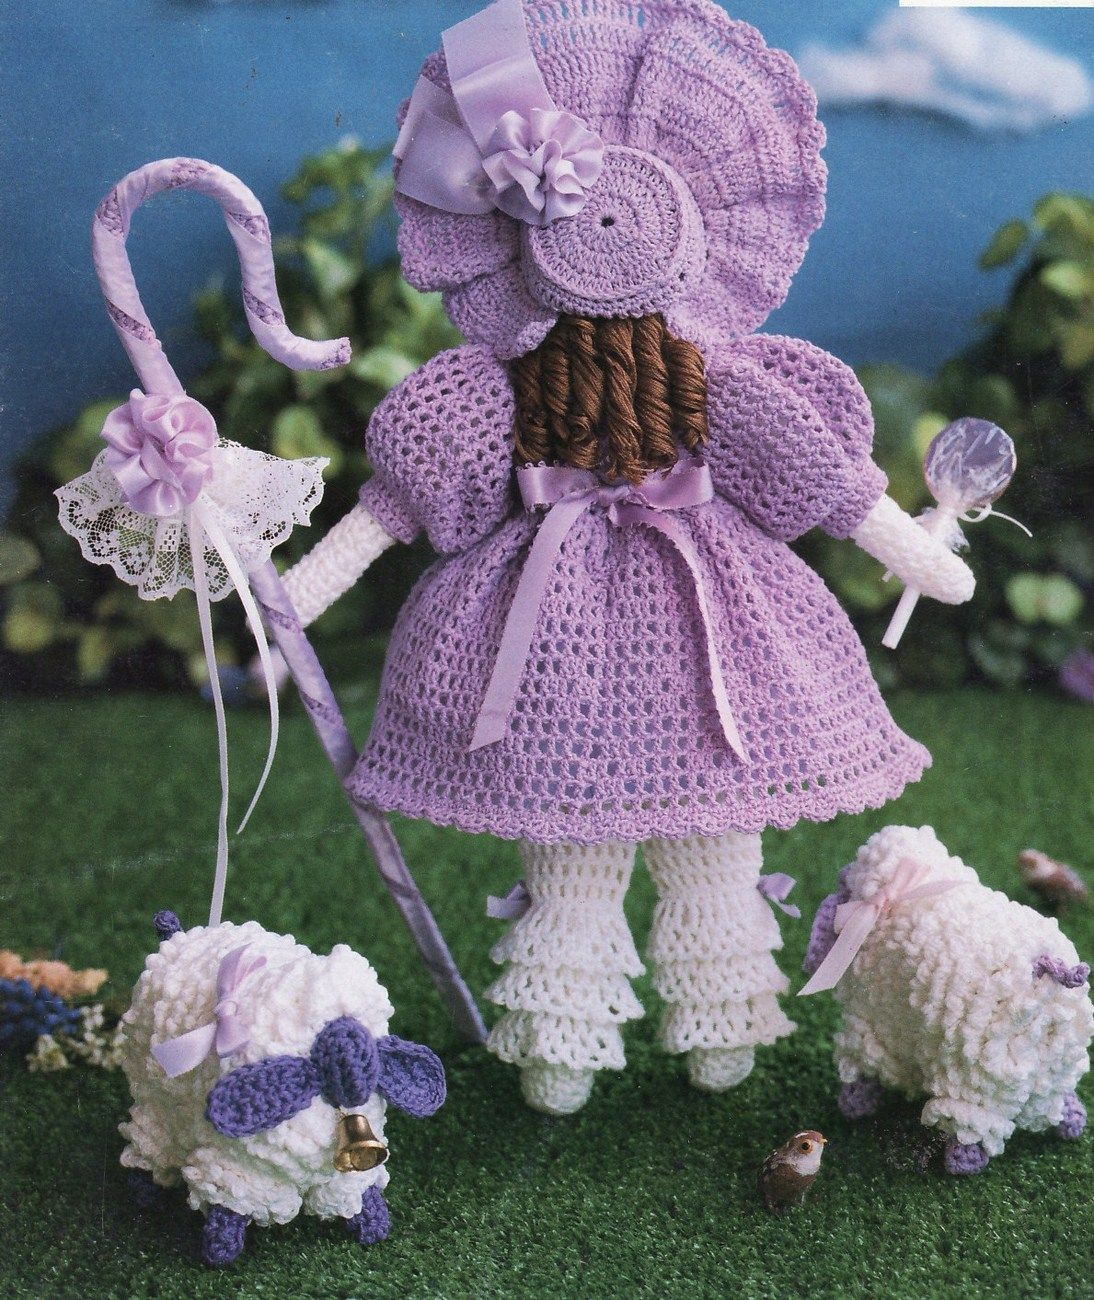 South Maid Fairy Tales Fables Fantasy Crochet Patterns Book Little